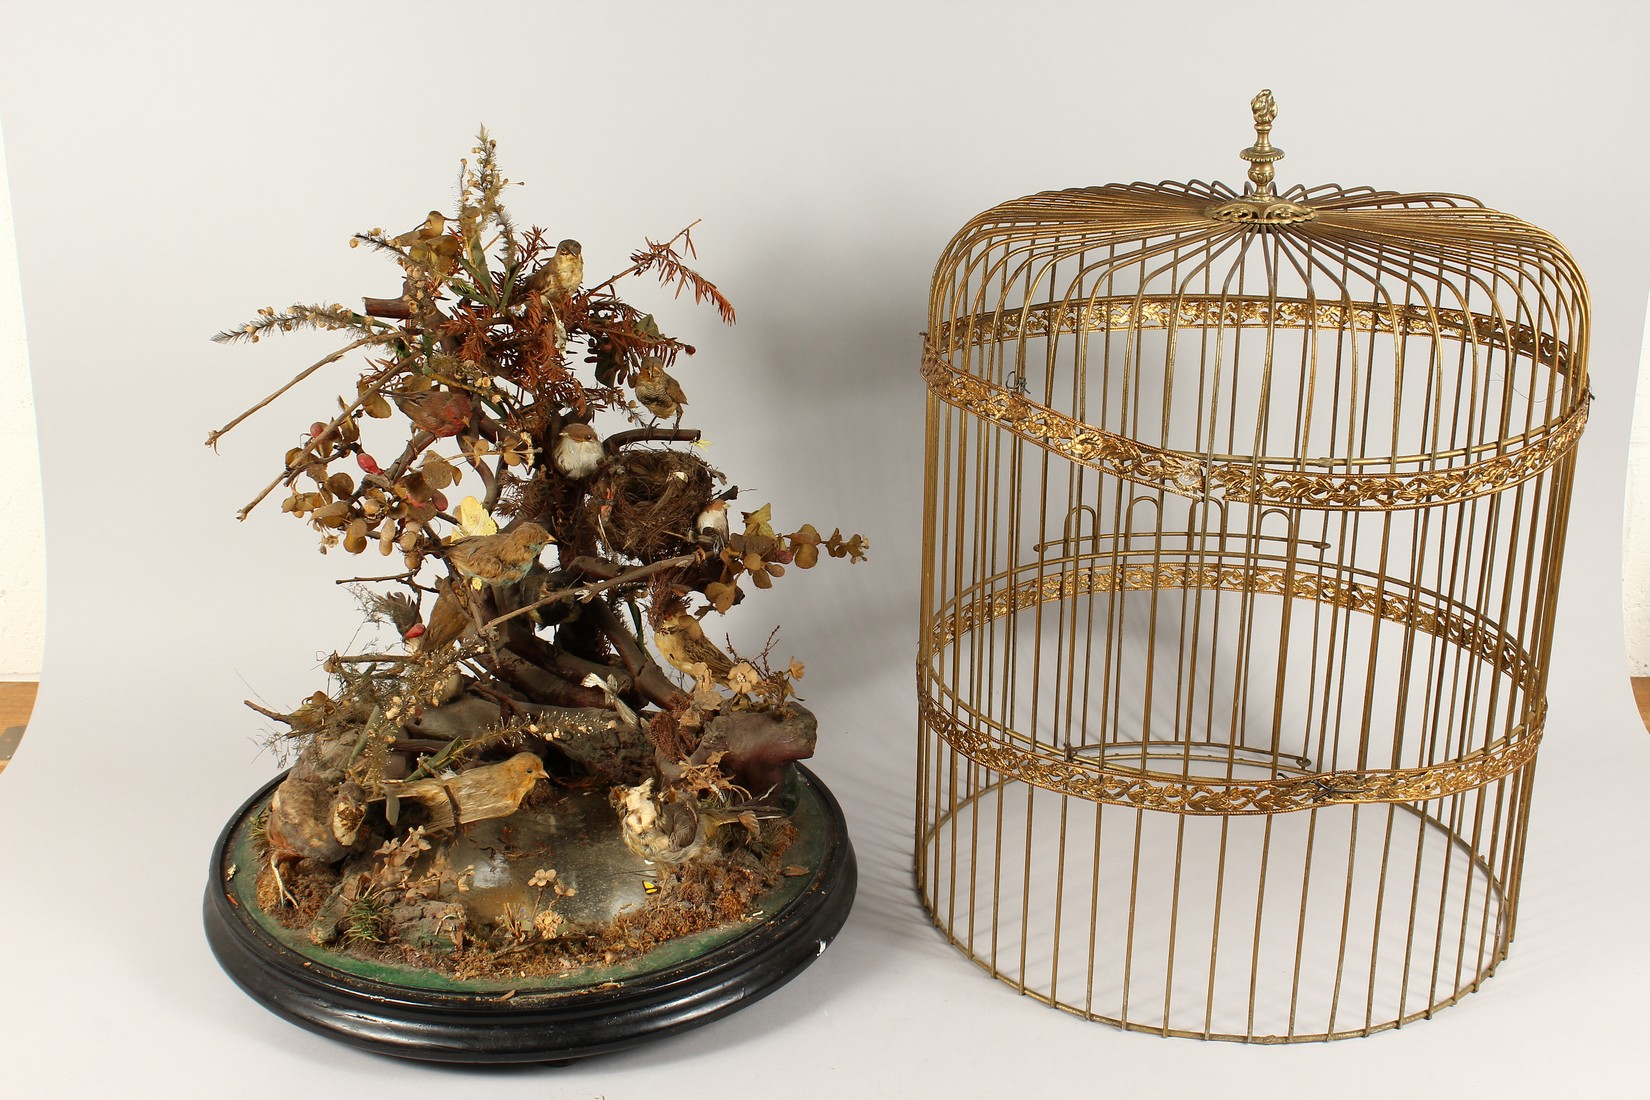 TAXIDERMY - VARIOUS SMALL BIRDS IN A METAL CAGE. Cage 23 ins tall - Image 2 of 6